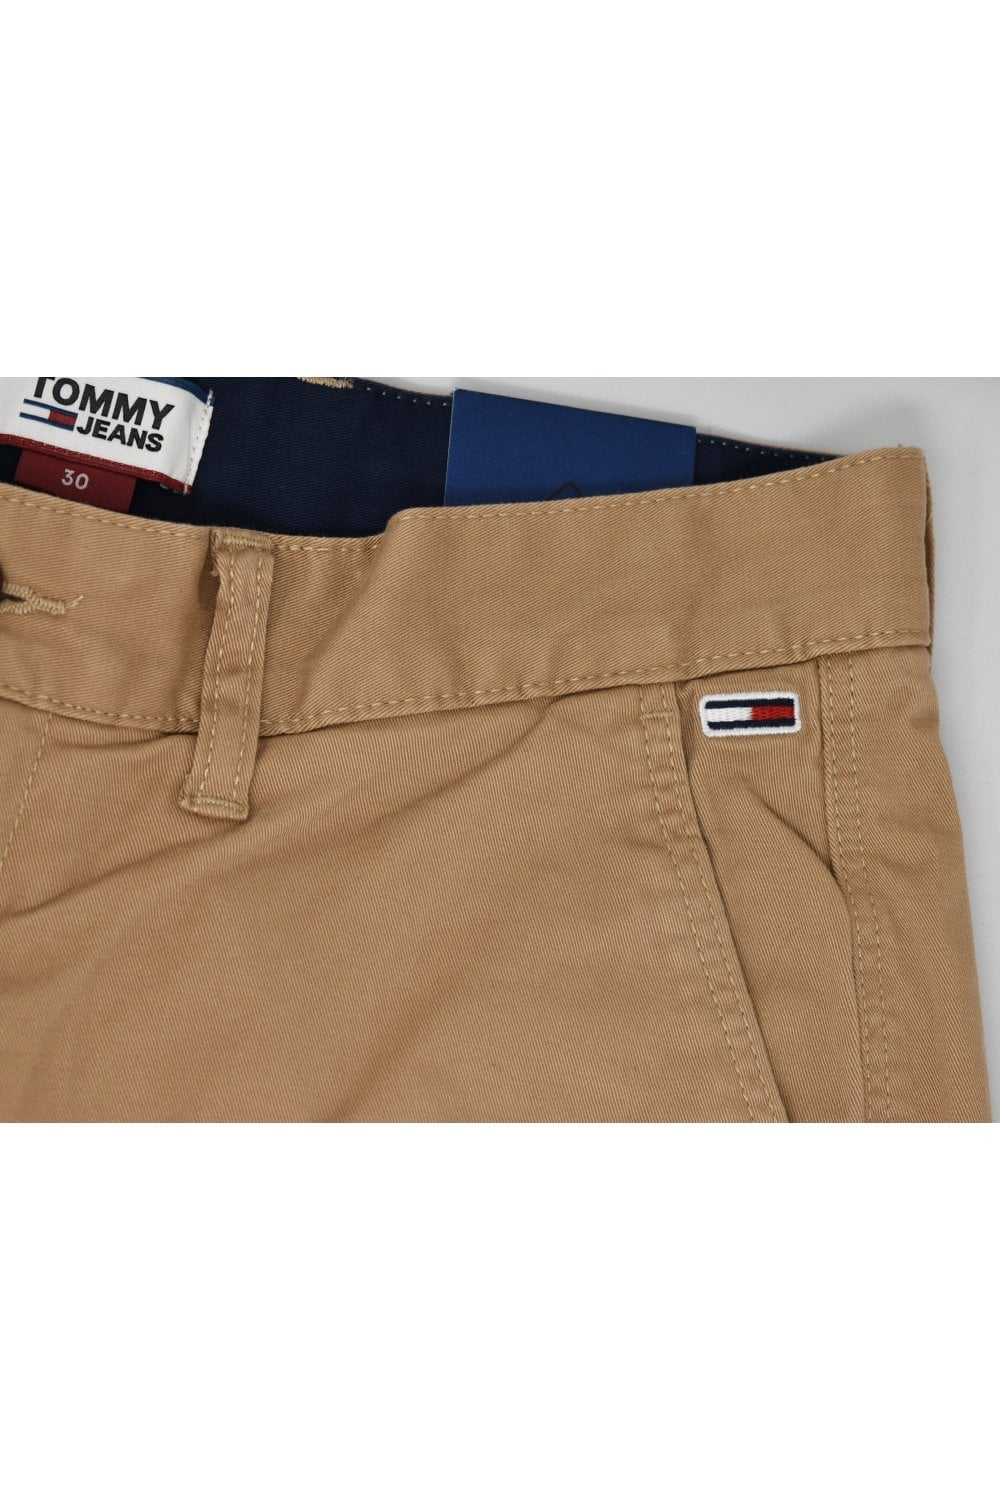 tommy jeans essential chino